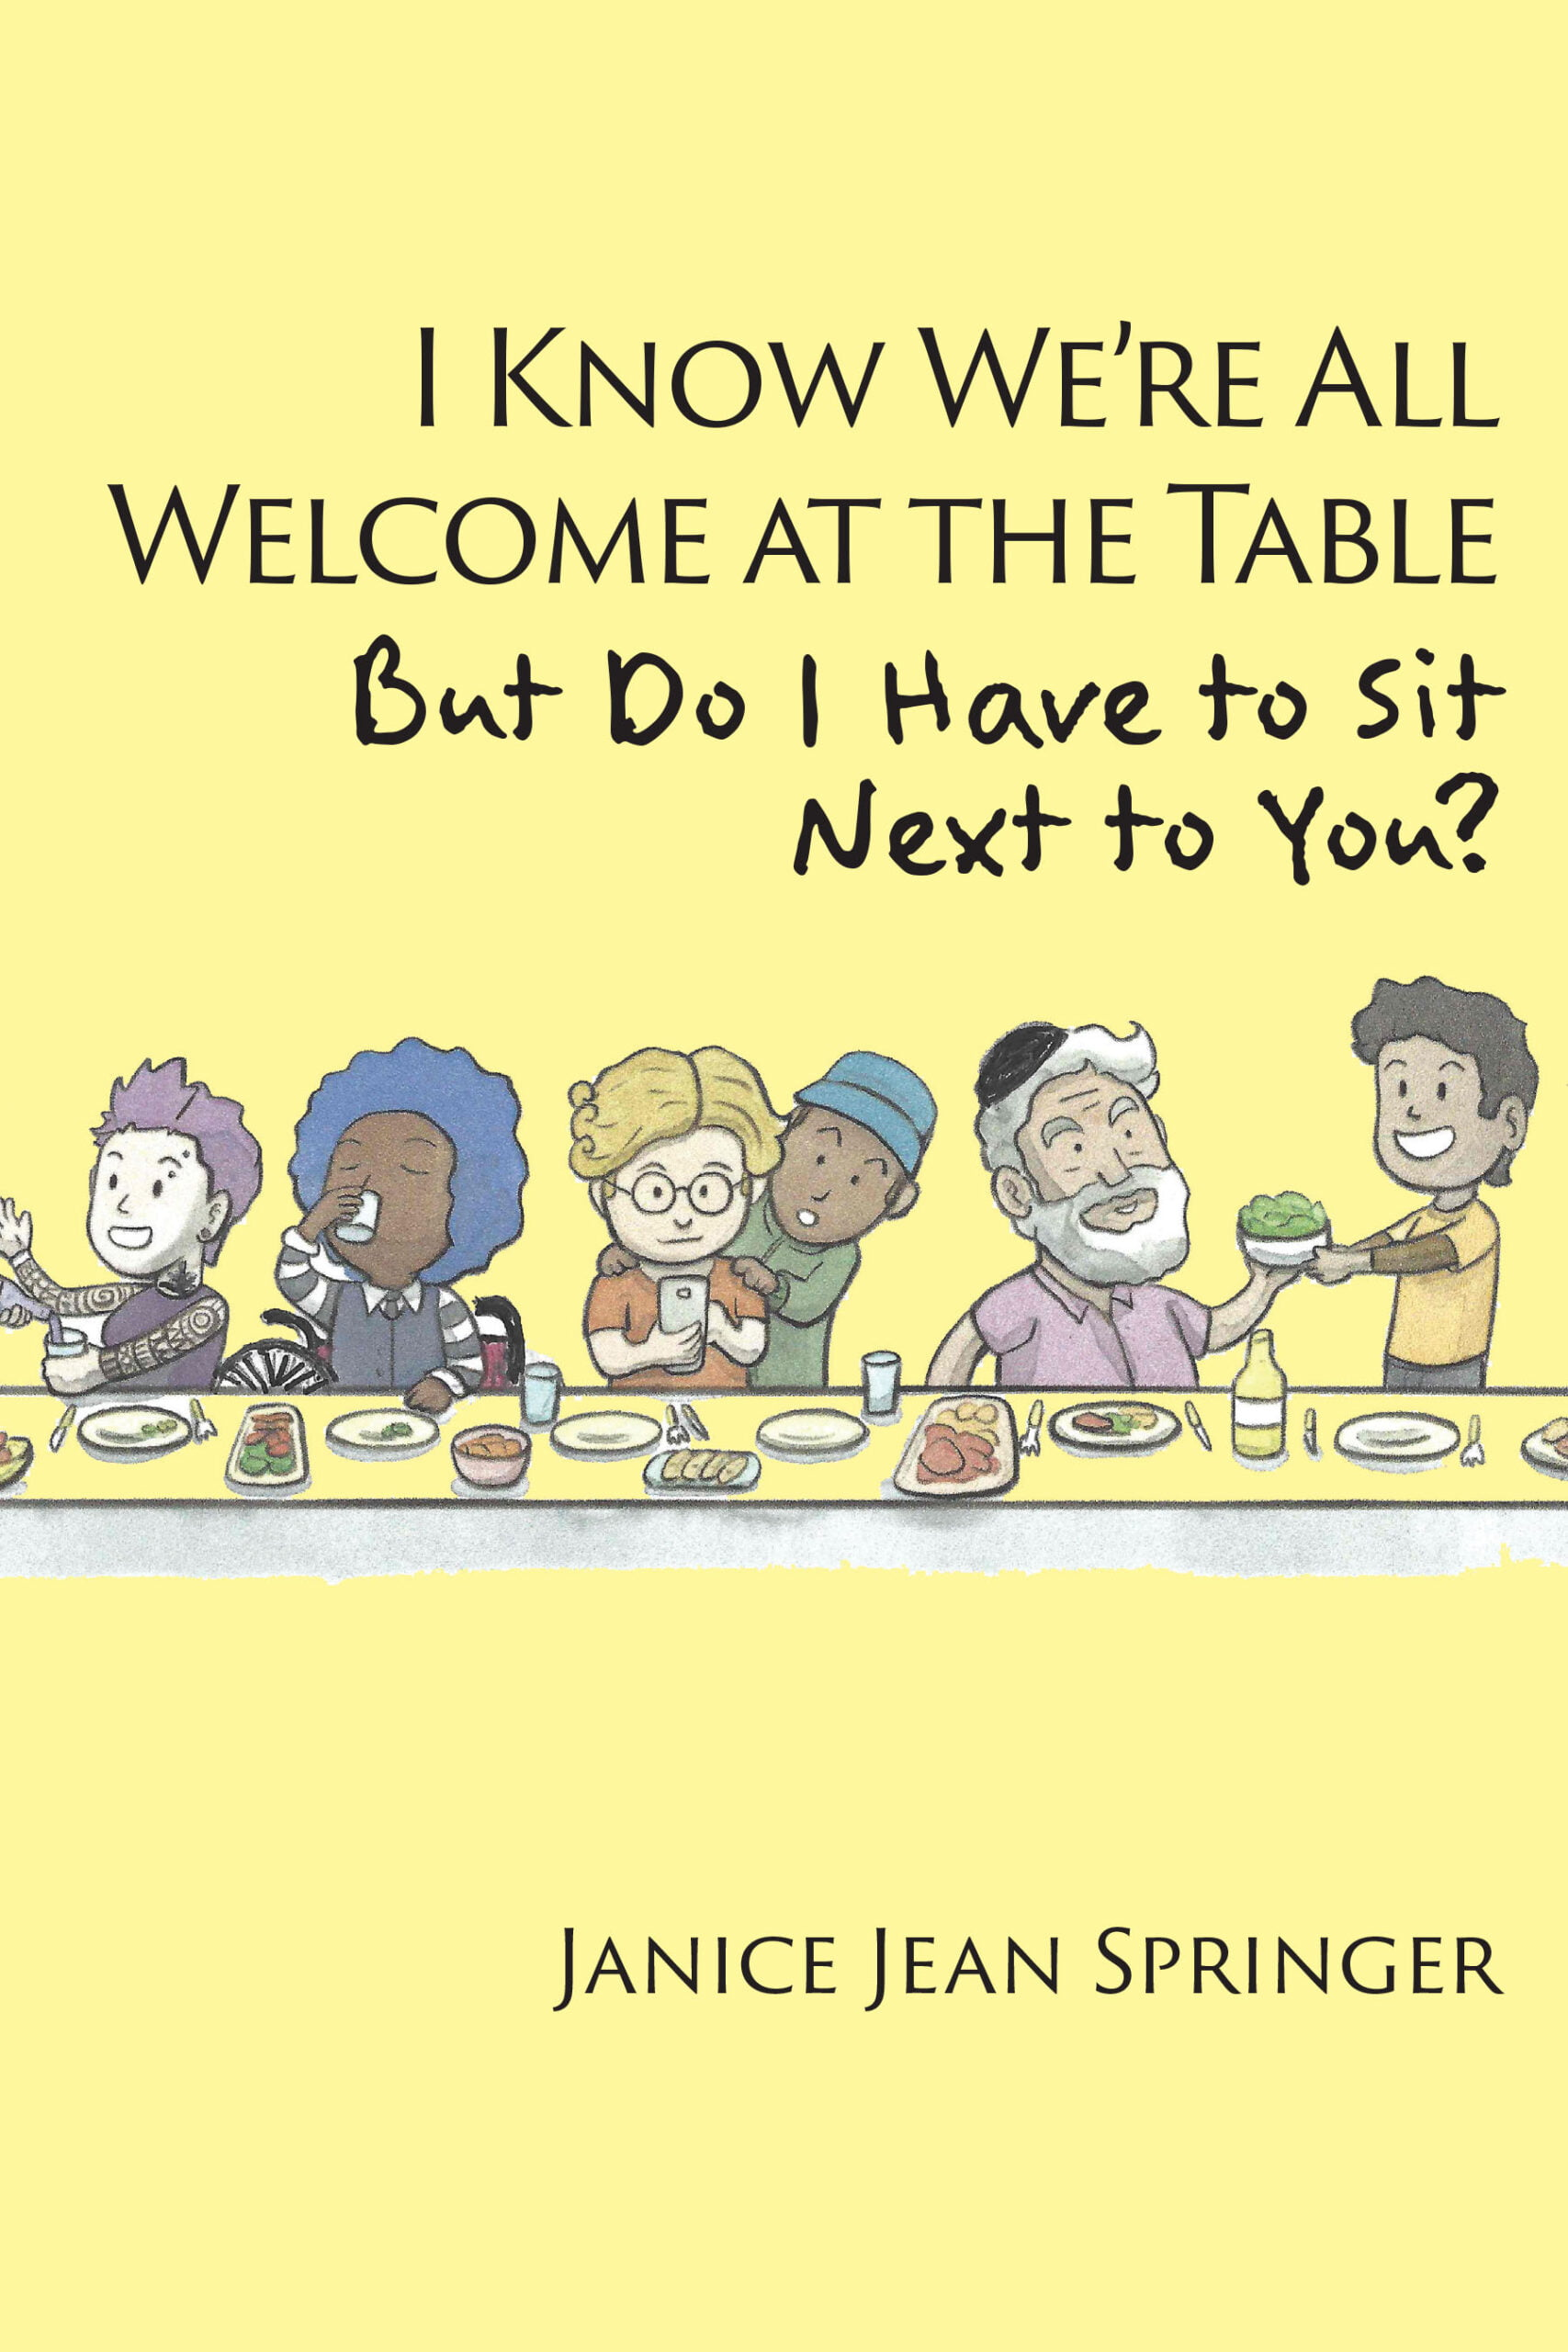 Welcome at the Table